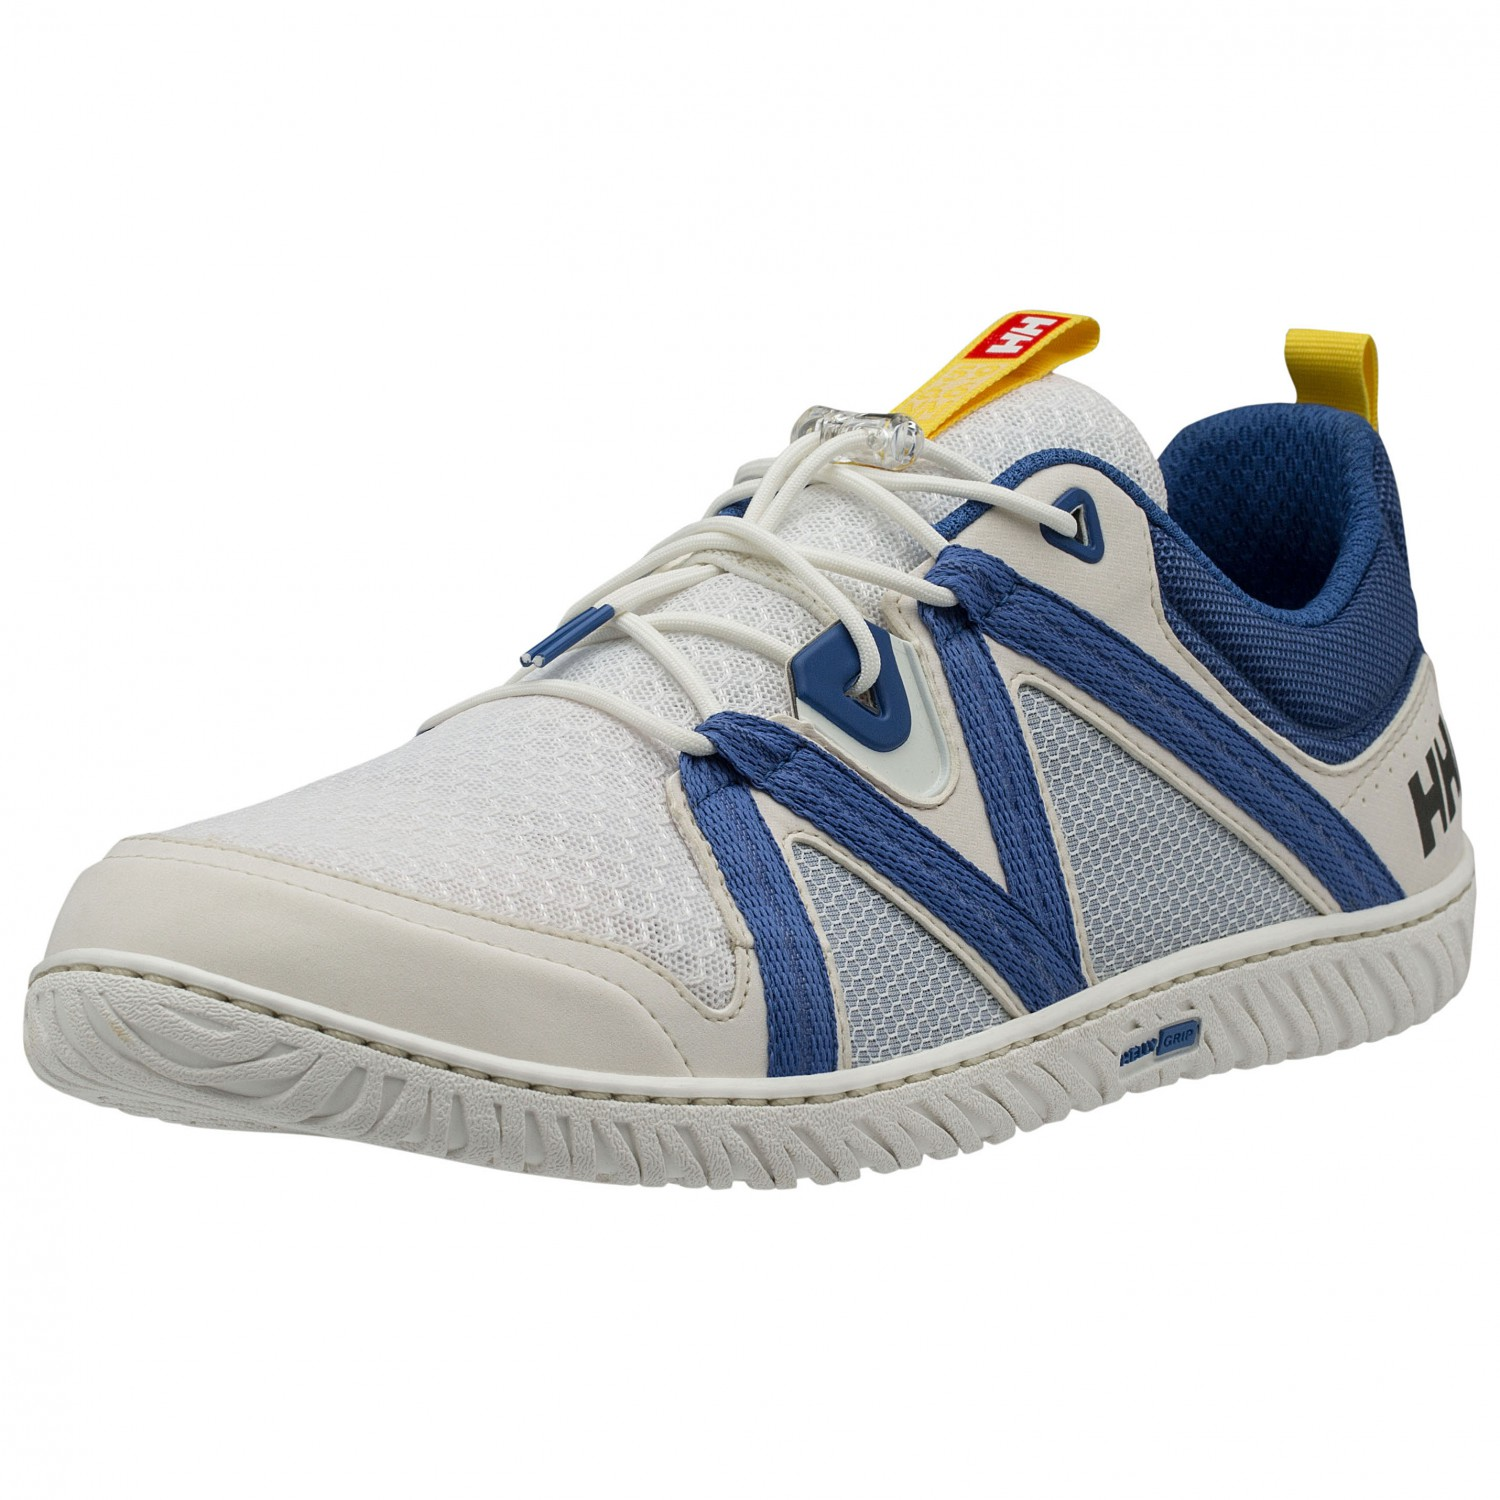 best service 5b0a3 c2b35 Helly Hansen - HP Foil F-1 - Scarpe per sport acquatici - Navy/Olympian  Blue/White/Neonyellow/Antique Silver | 11,5 (US)